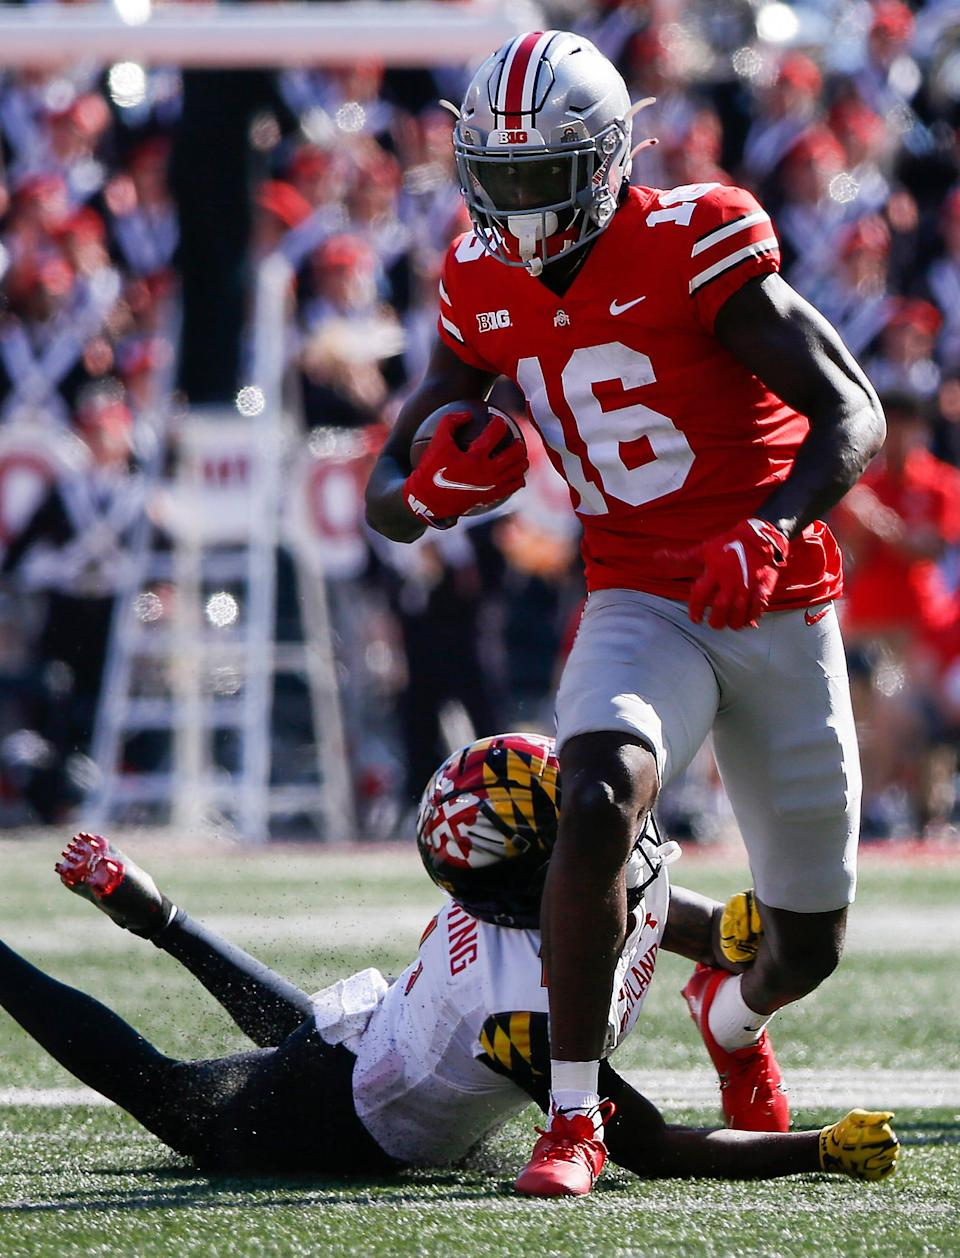 Ohio State Buckeyes cornerback Ryan Watts (16) runs the ball back after an interception during the fourth quarter of a NCAA Division I football game between the Ohio State Buckeyes and the Maryland Terrapins on Saturday, Oct. 9, 2021 at Ohio Stadium in Columbus, Ohio.